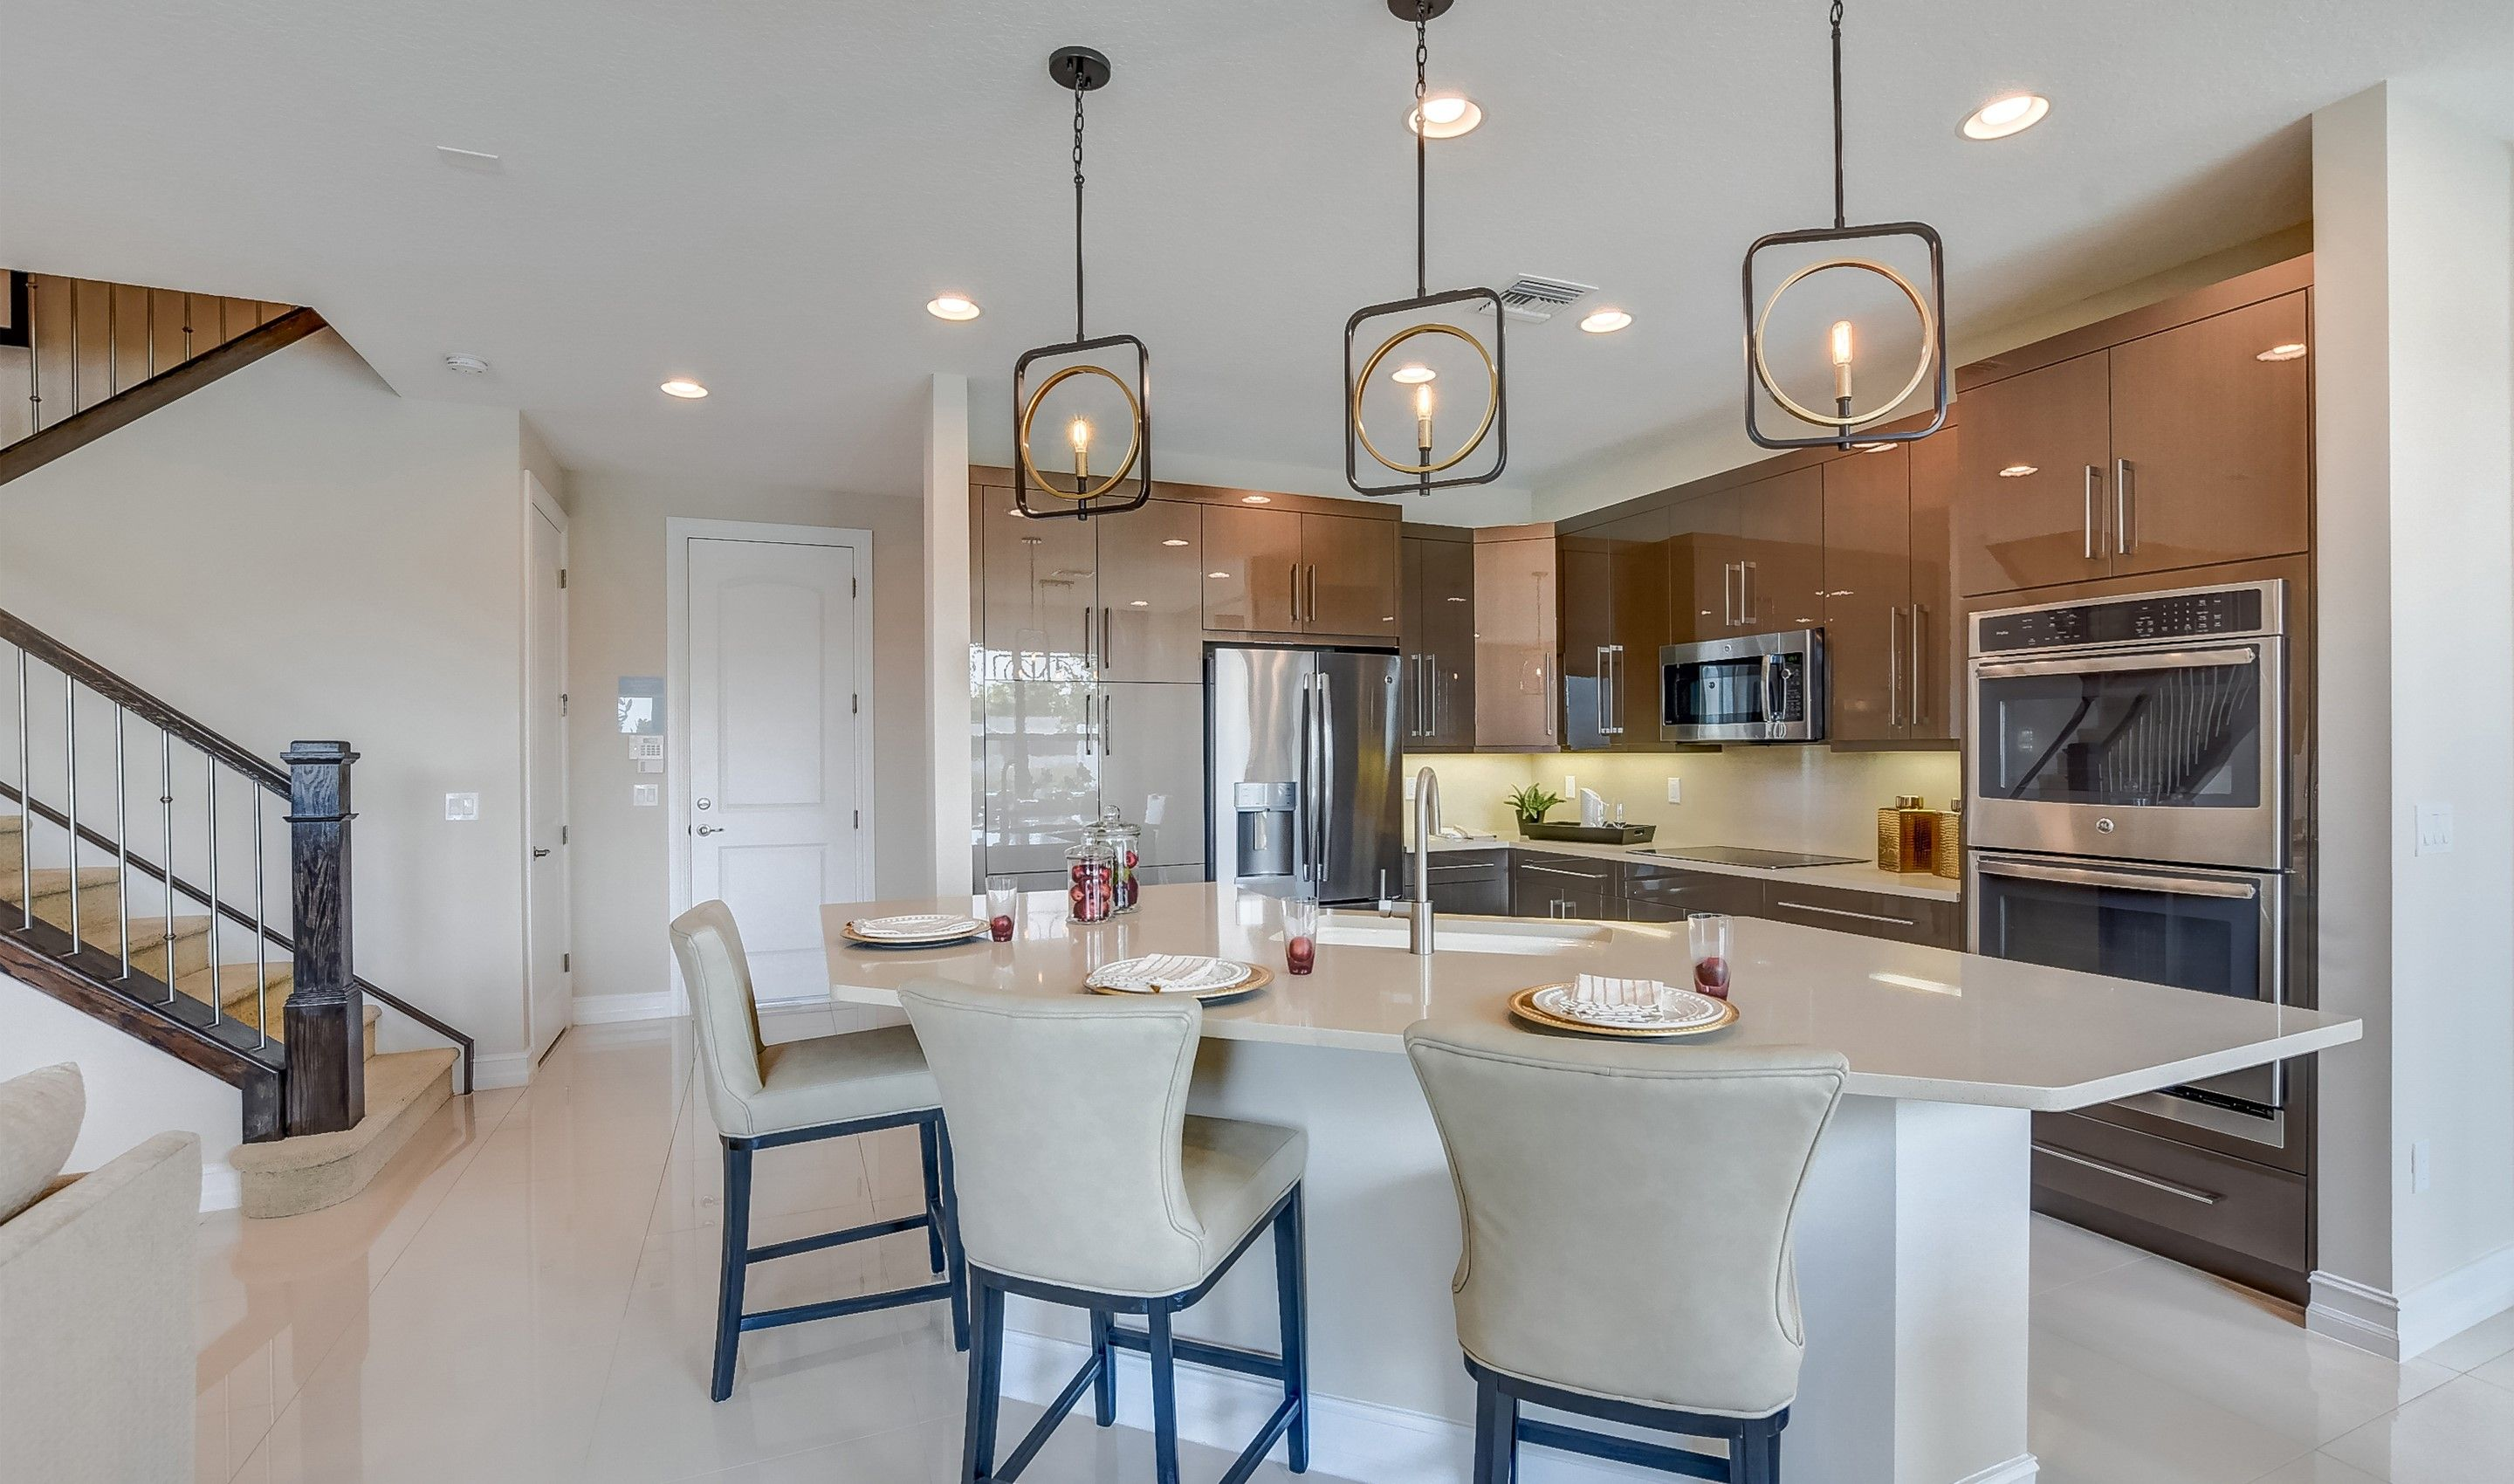 Kitchen featured in the Bonaire II By K. Hovnanian® Homes in Palm Beach County, FL